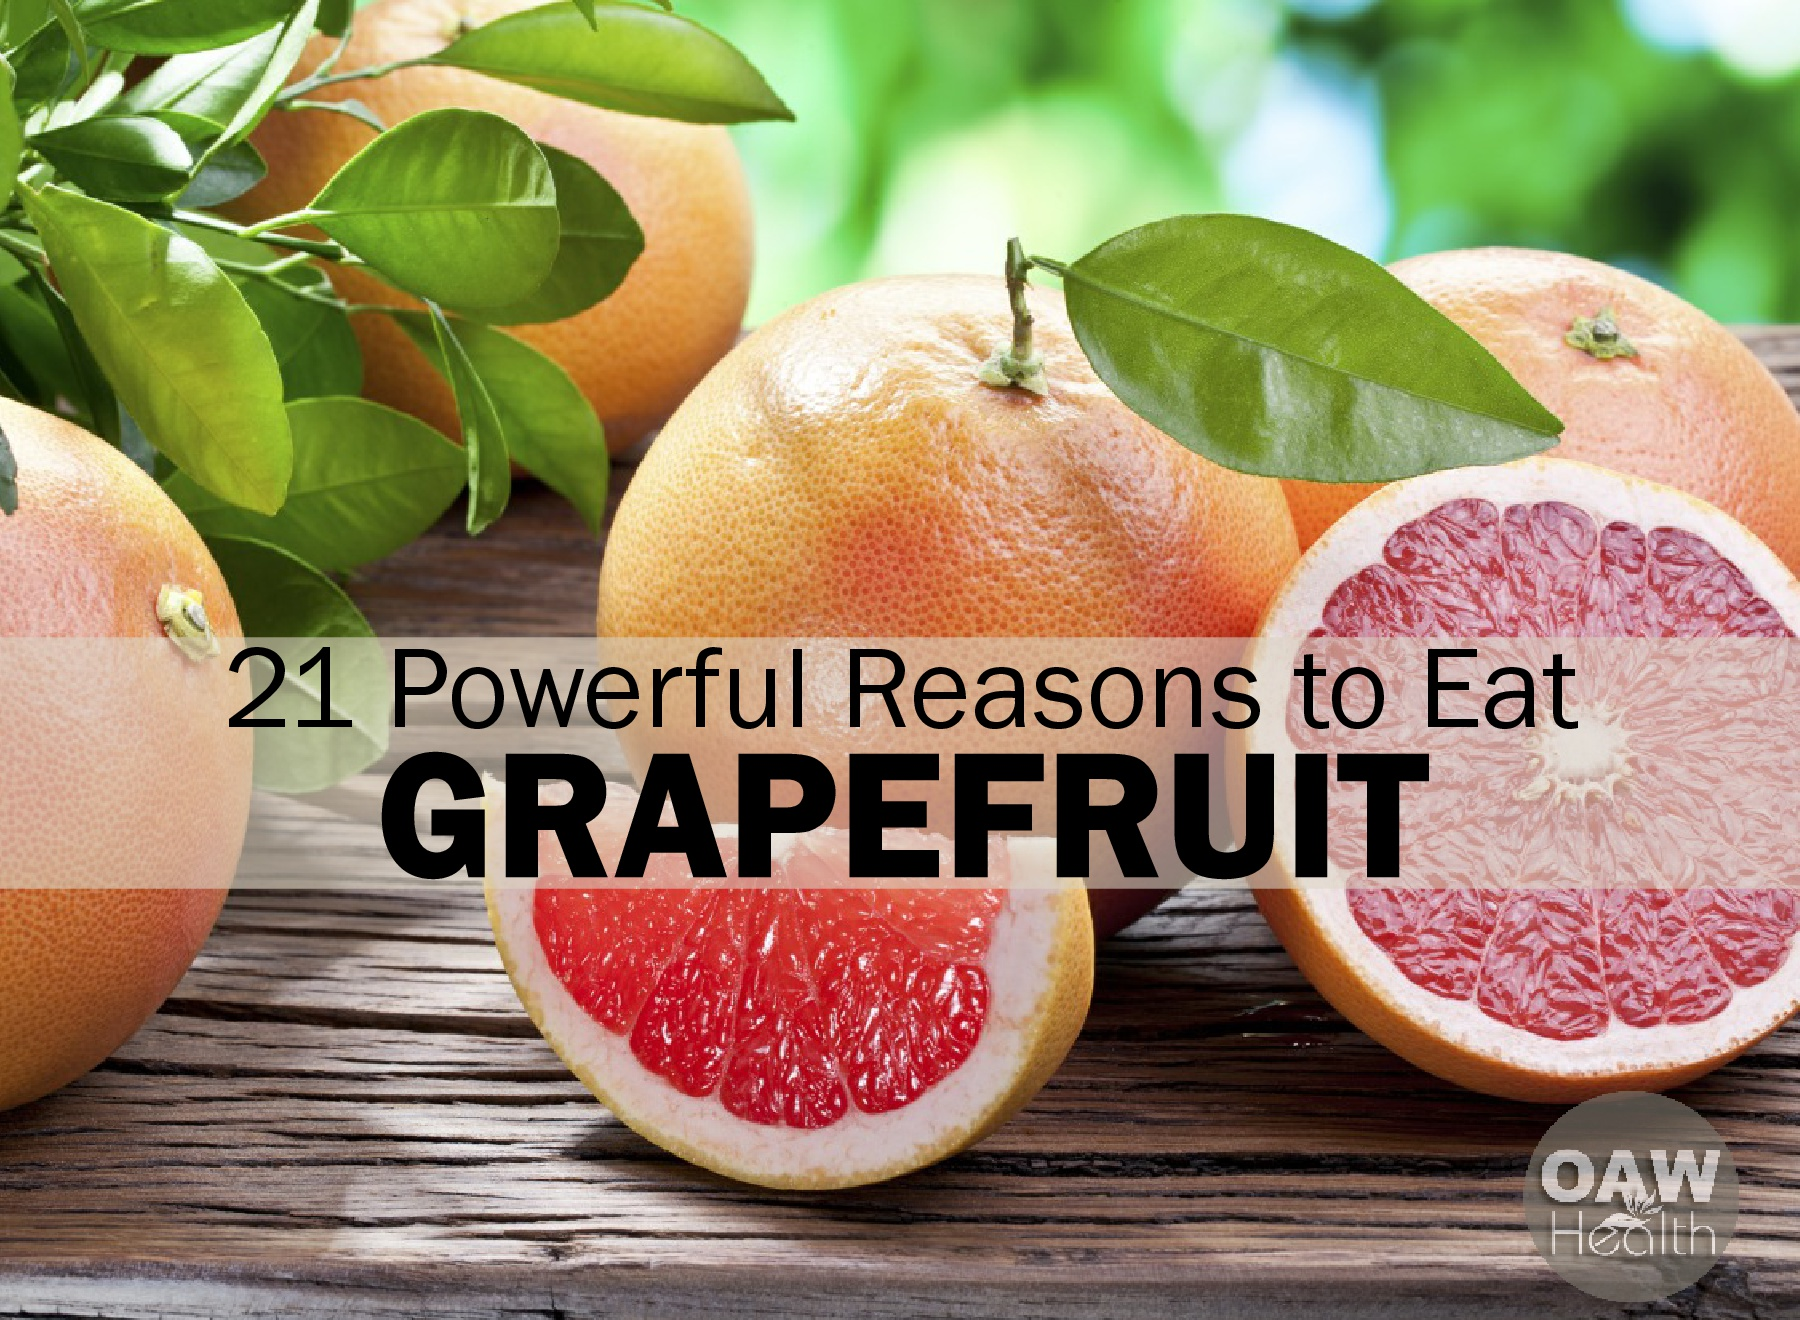 21 Powerful Reasons to Eat Grapefruit